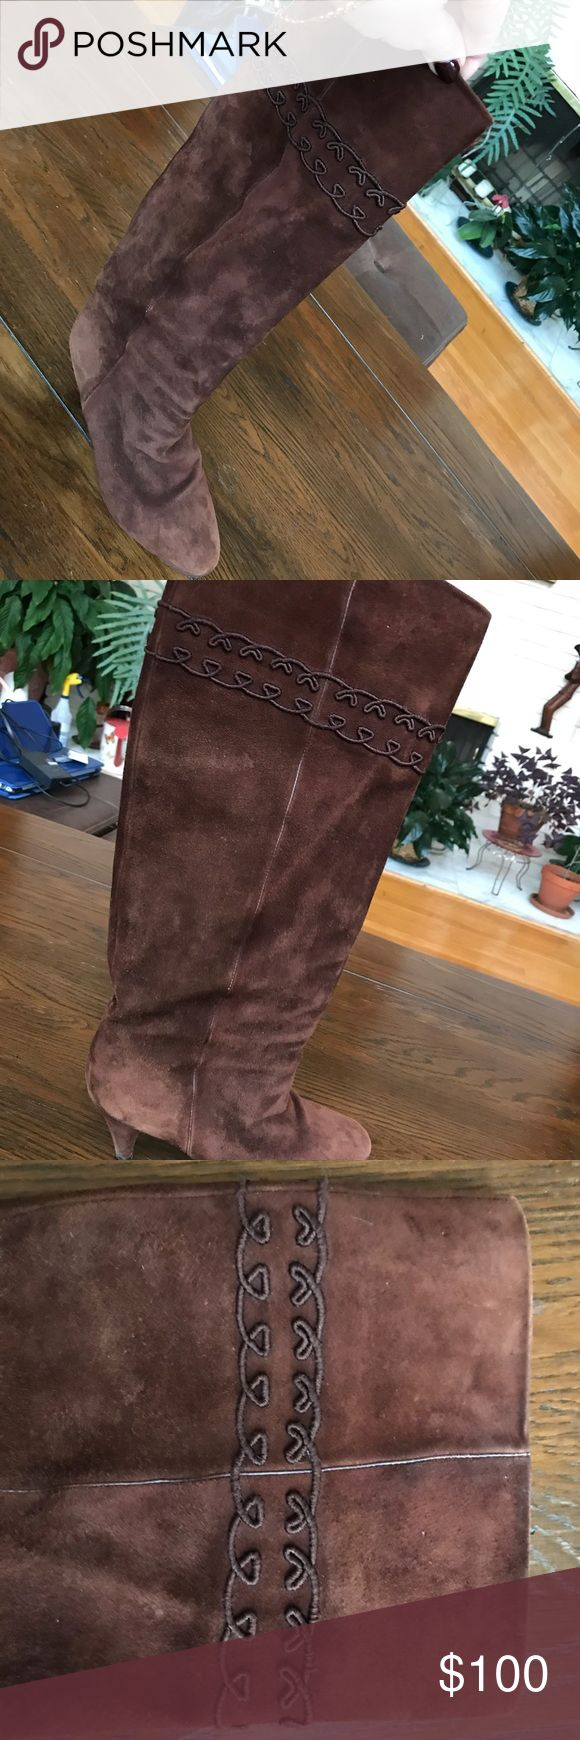 Gucci boots 81/2 B suede brown So elegant and classy boots. The calves are too tight for me. Heels 3 inches. Has some wear on the heels but you can not notice when you have it on. Good used condition and the price reflects it. Gucci Shoes Ankle Boots & Booties